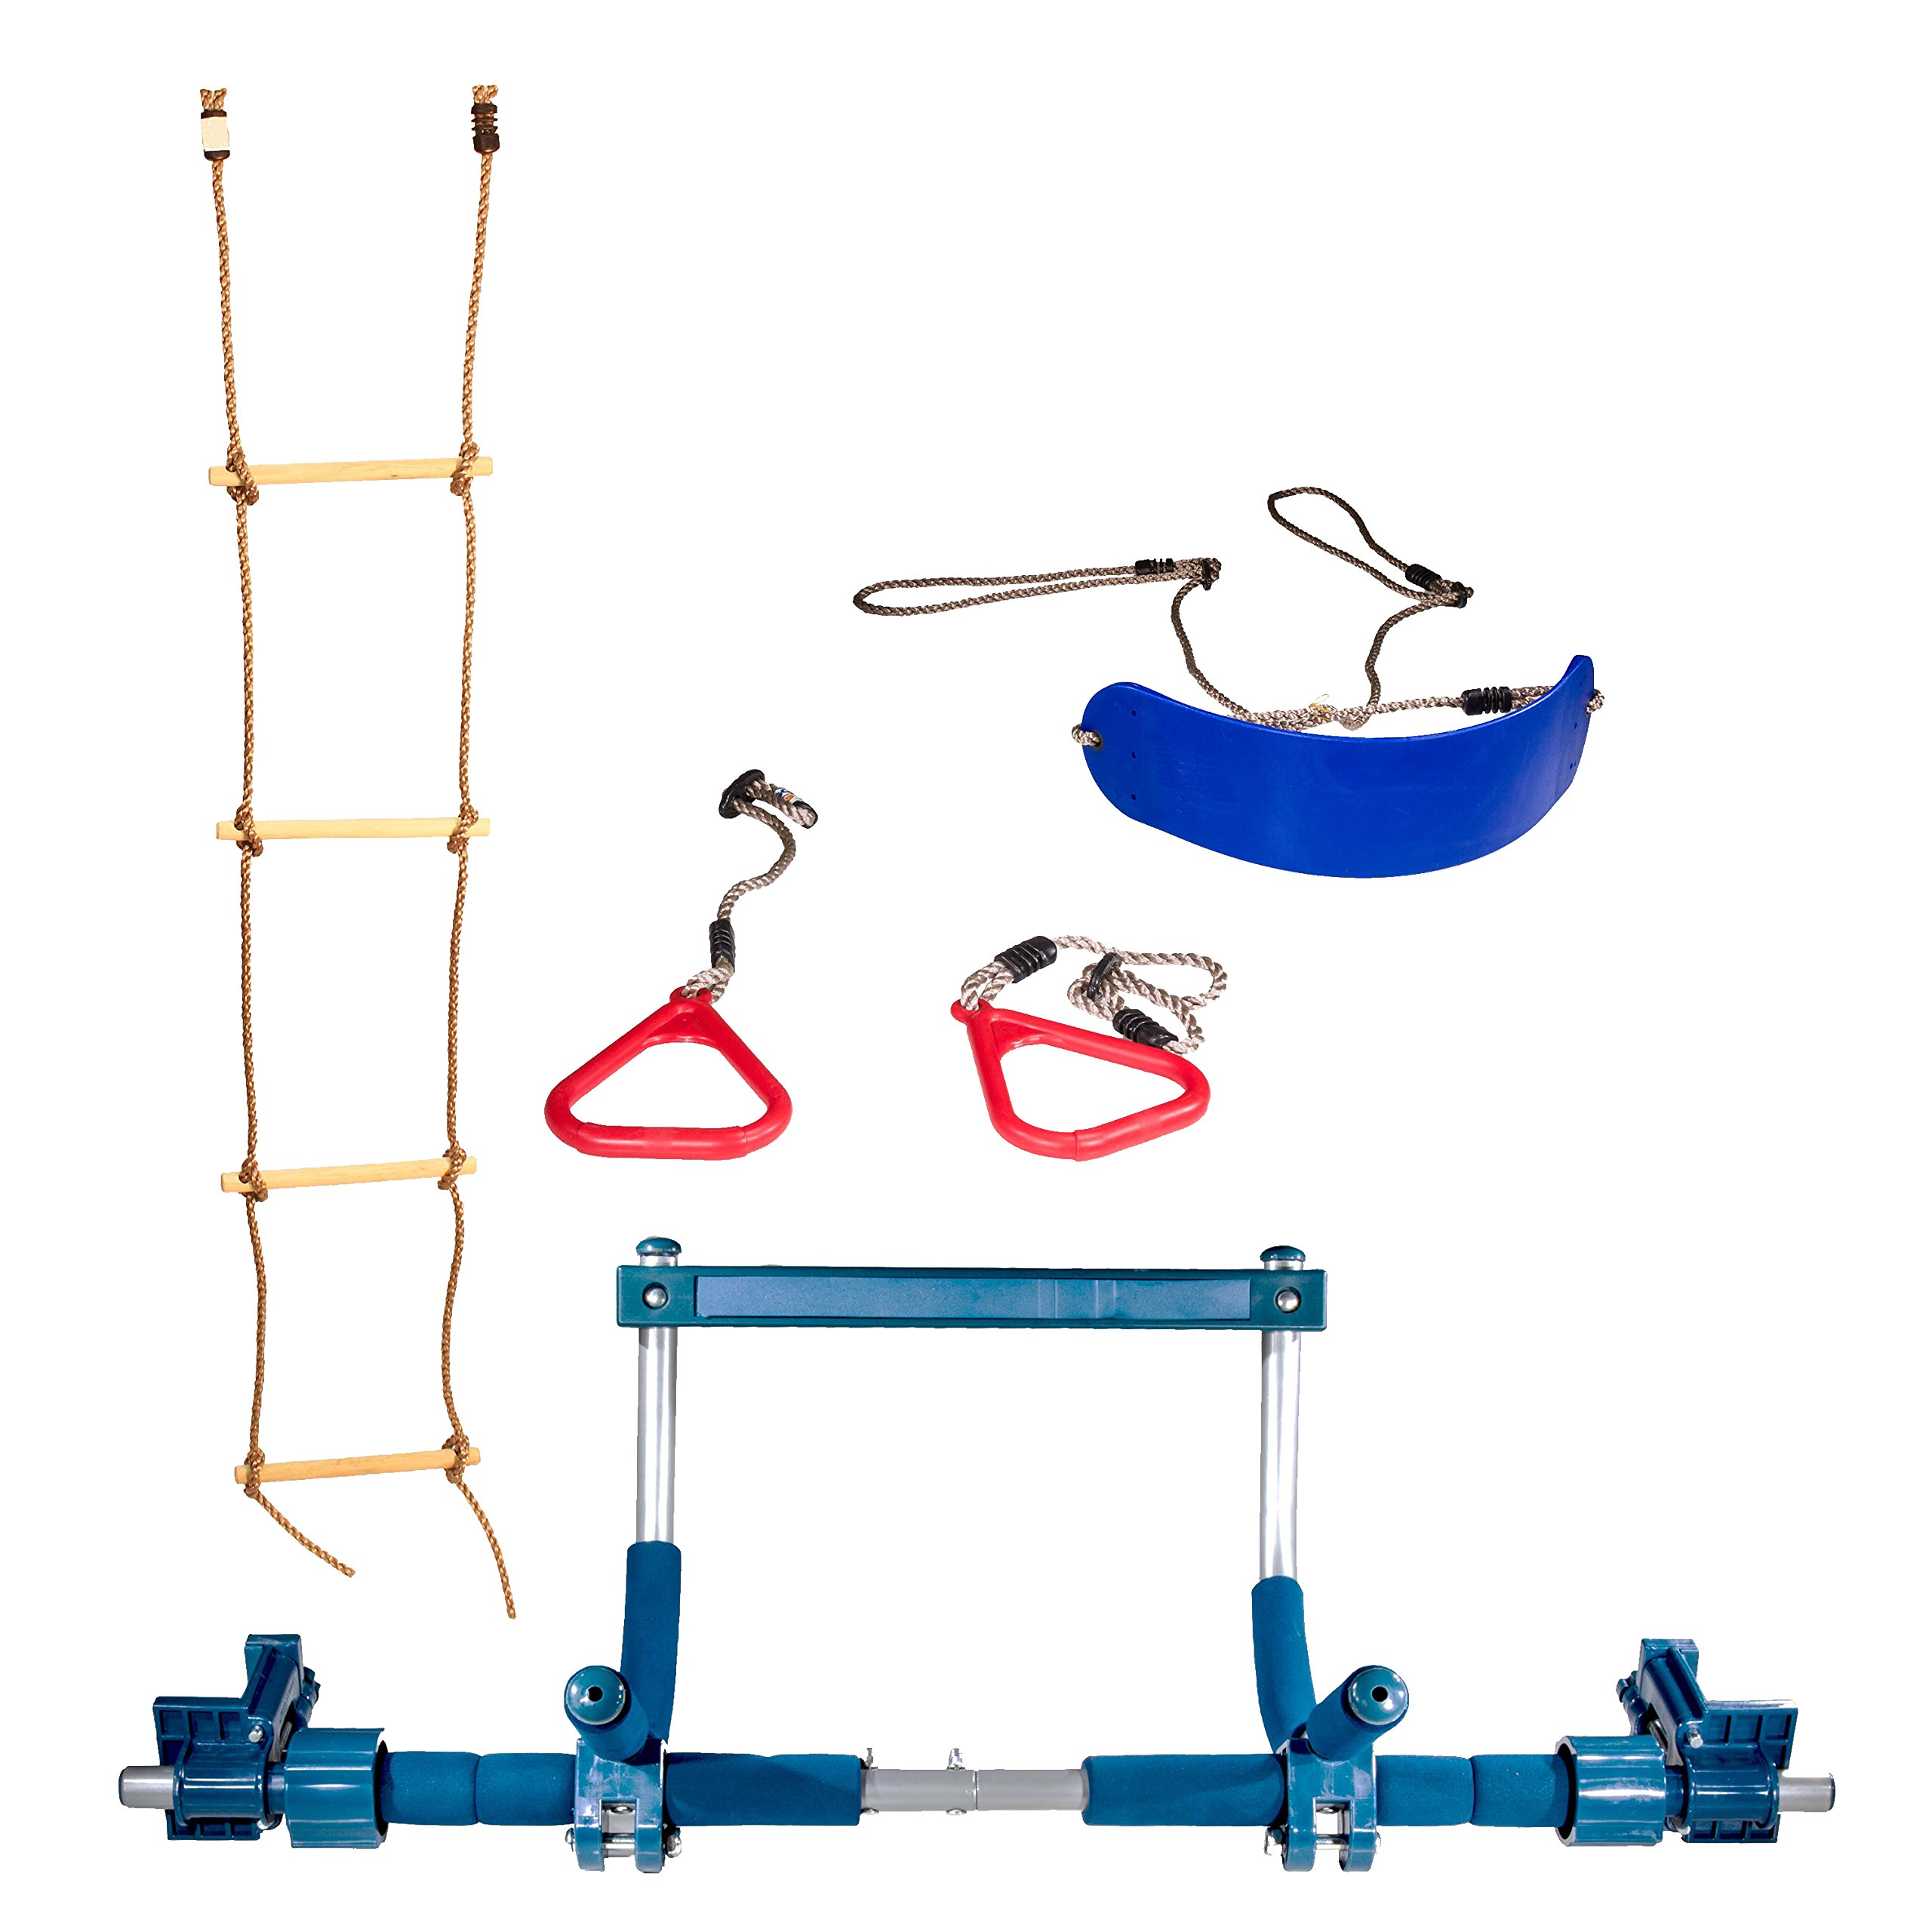 Gym1 Indoor Playground with Indoor Swing, Plastic Rings, and Climbing Ladder by Gym1